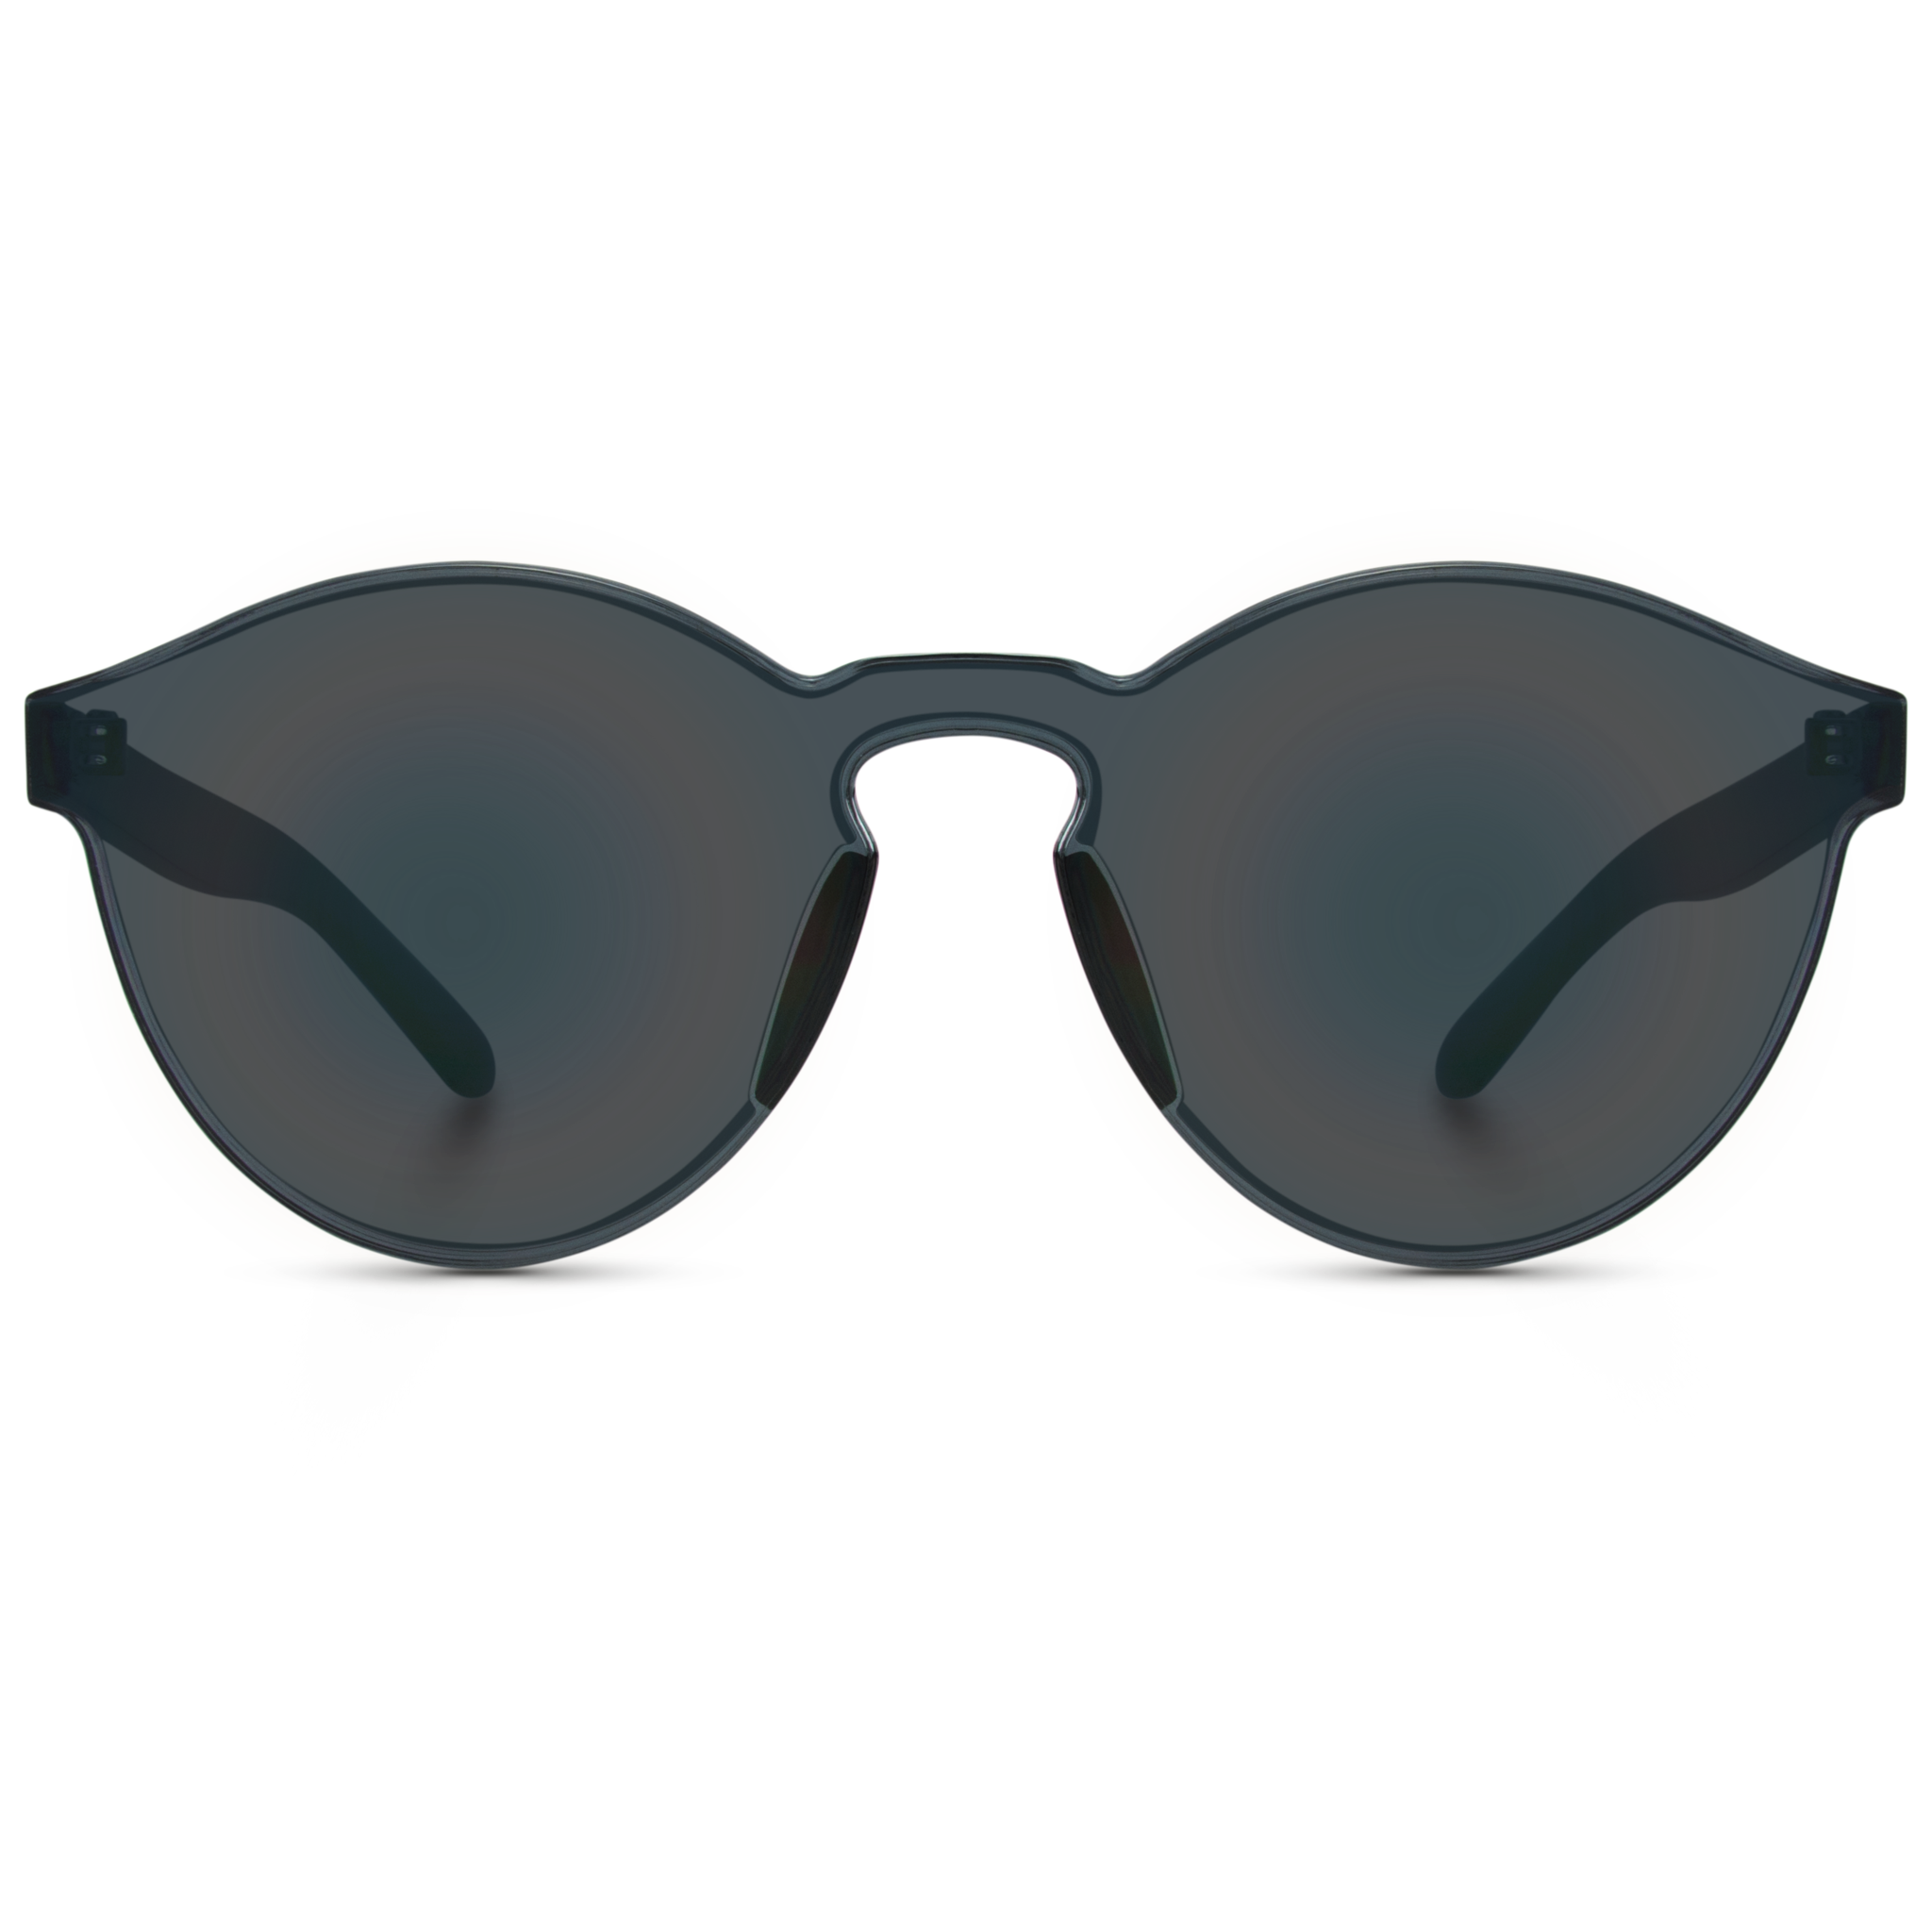 Aviators transparent. Affordable colorful round women